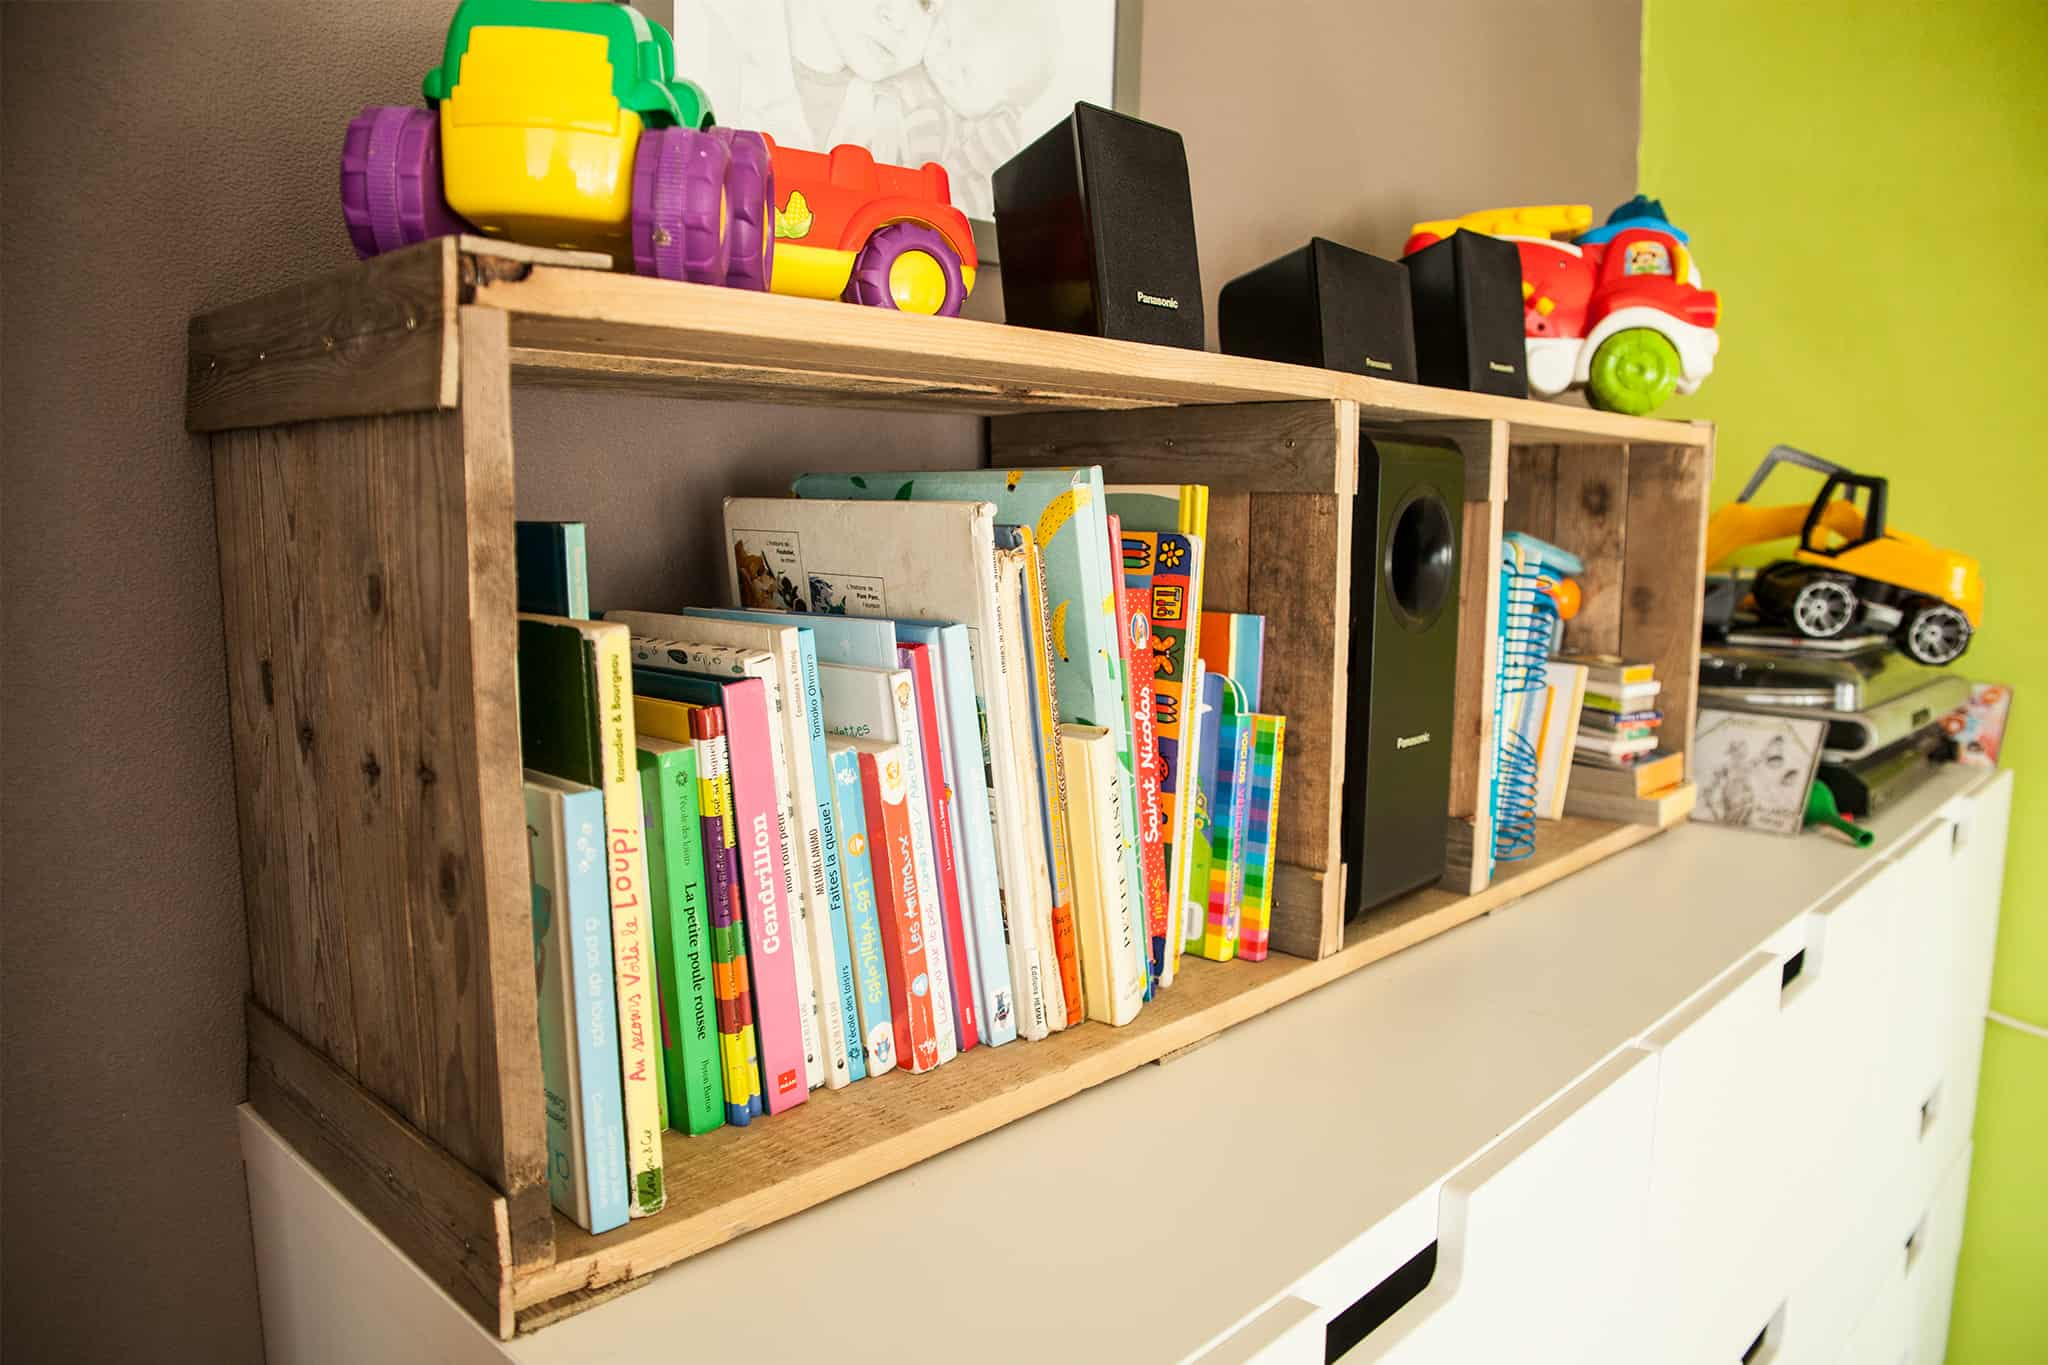 Bookshelf For Kids Room Rustic Pallet Bookshelves For Kid 39s Room Etagère